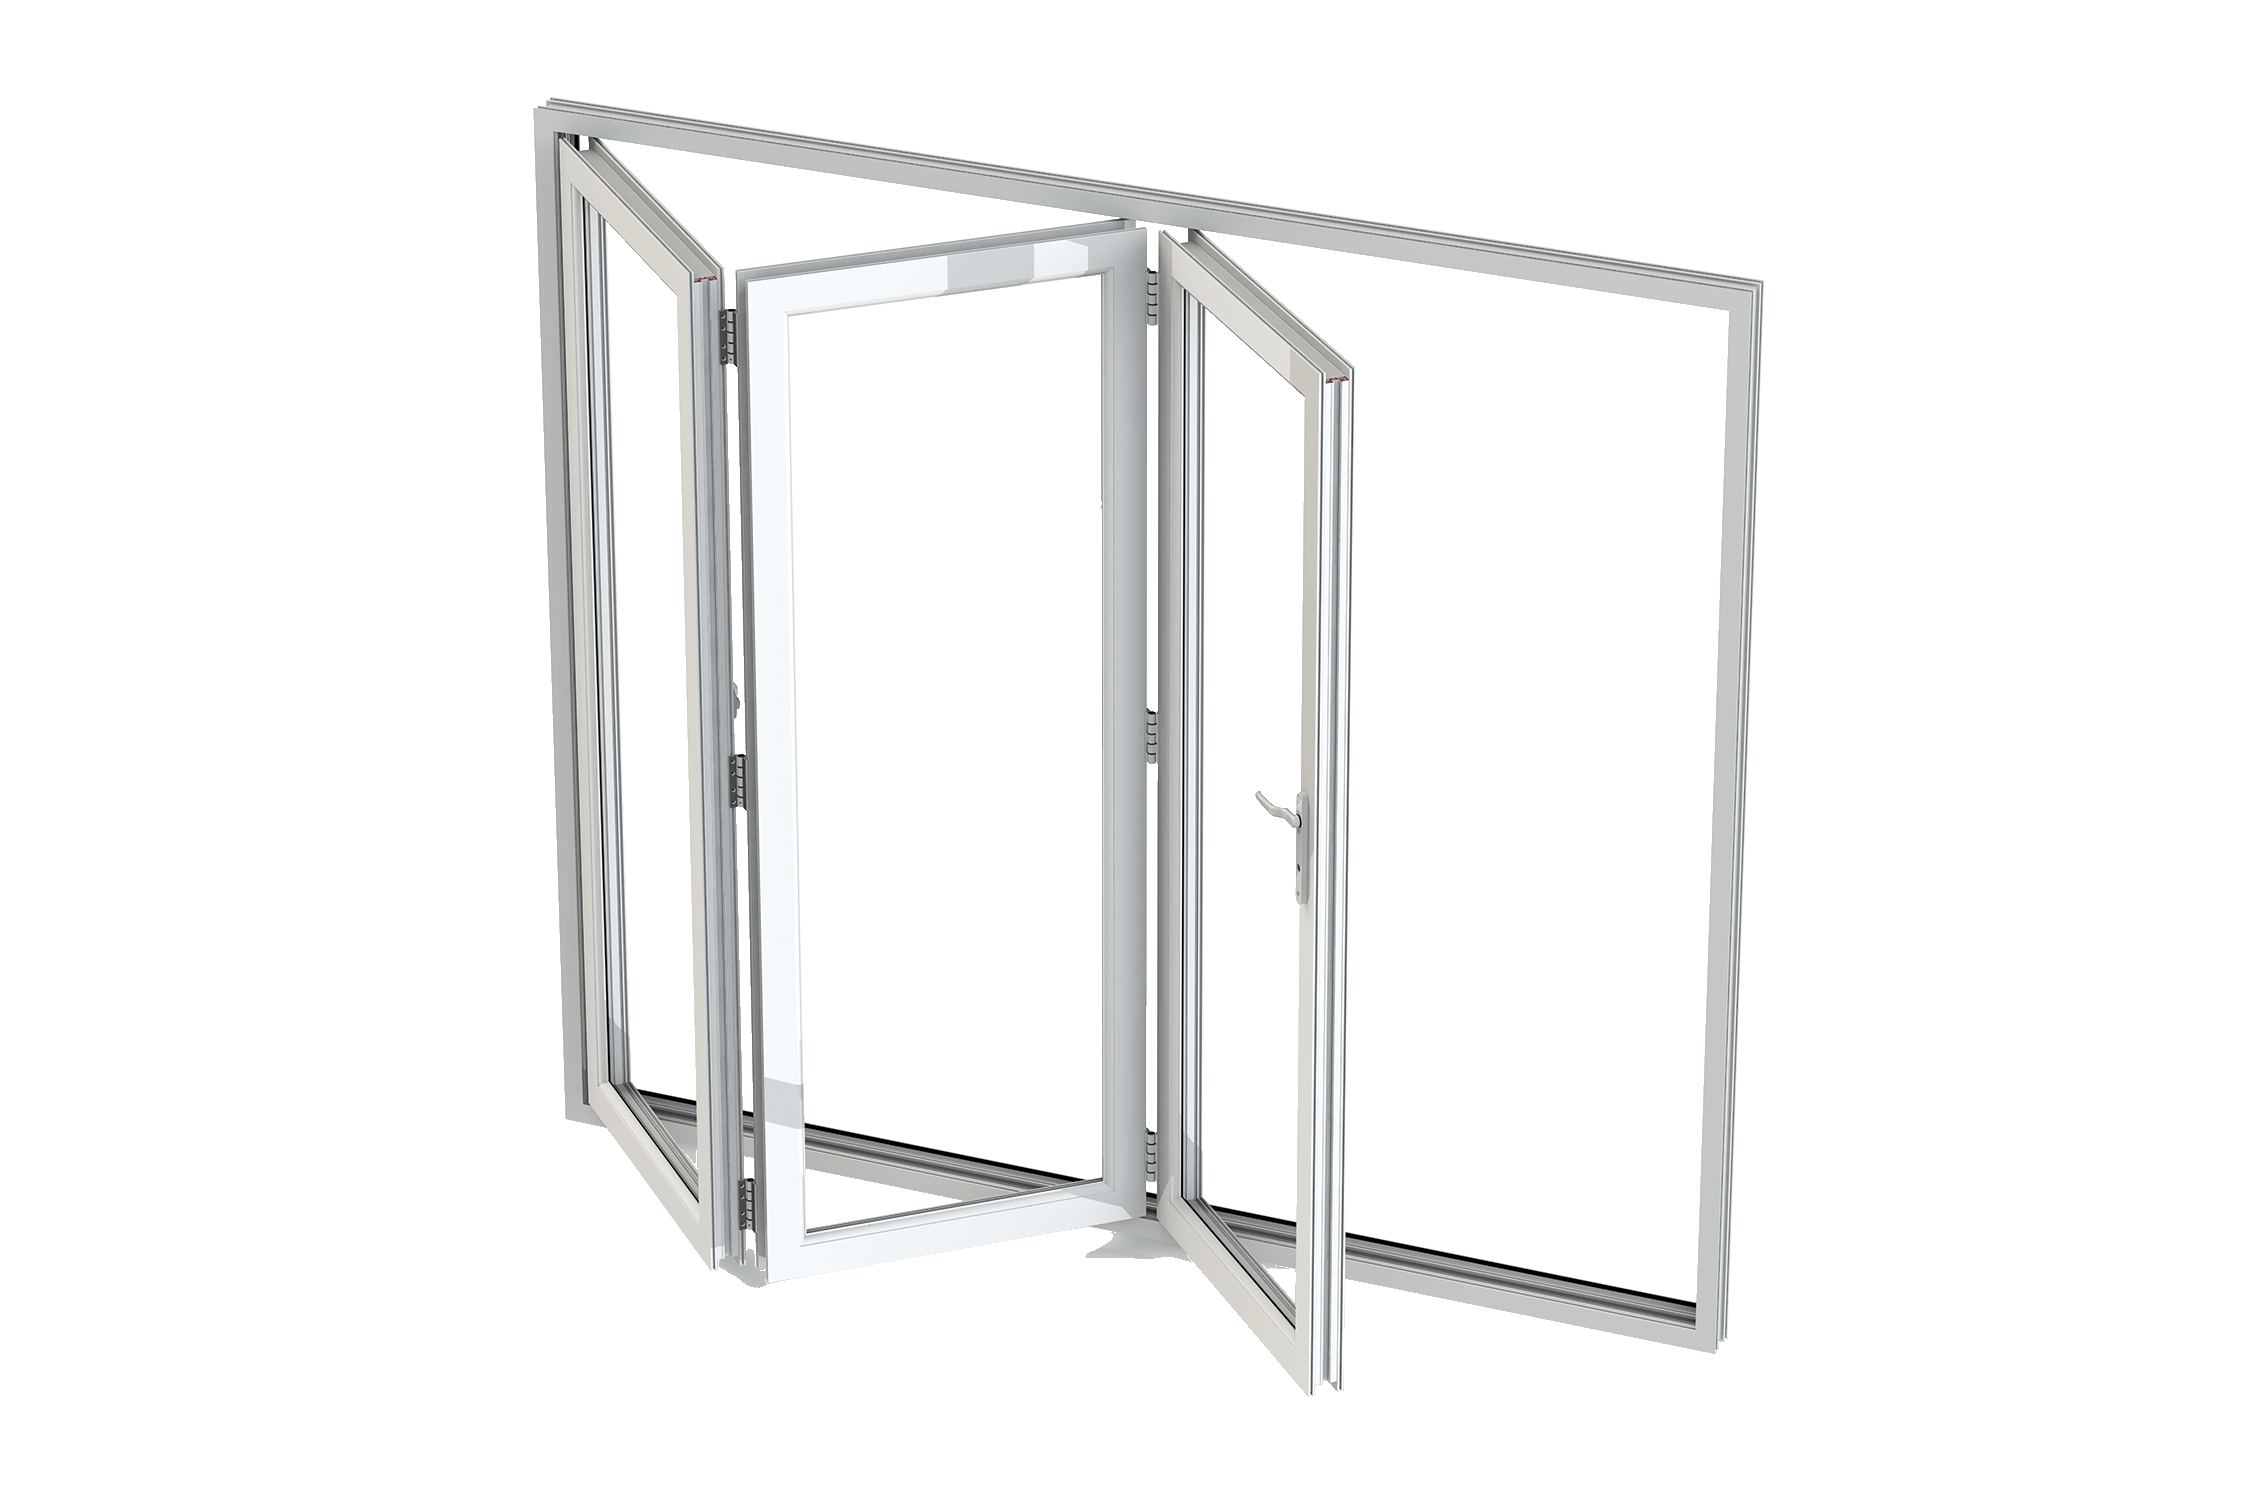 Aluminium Bi Folding And Multi Folding Doors Double Glazed Doors - Double glazed bi folding doors london